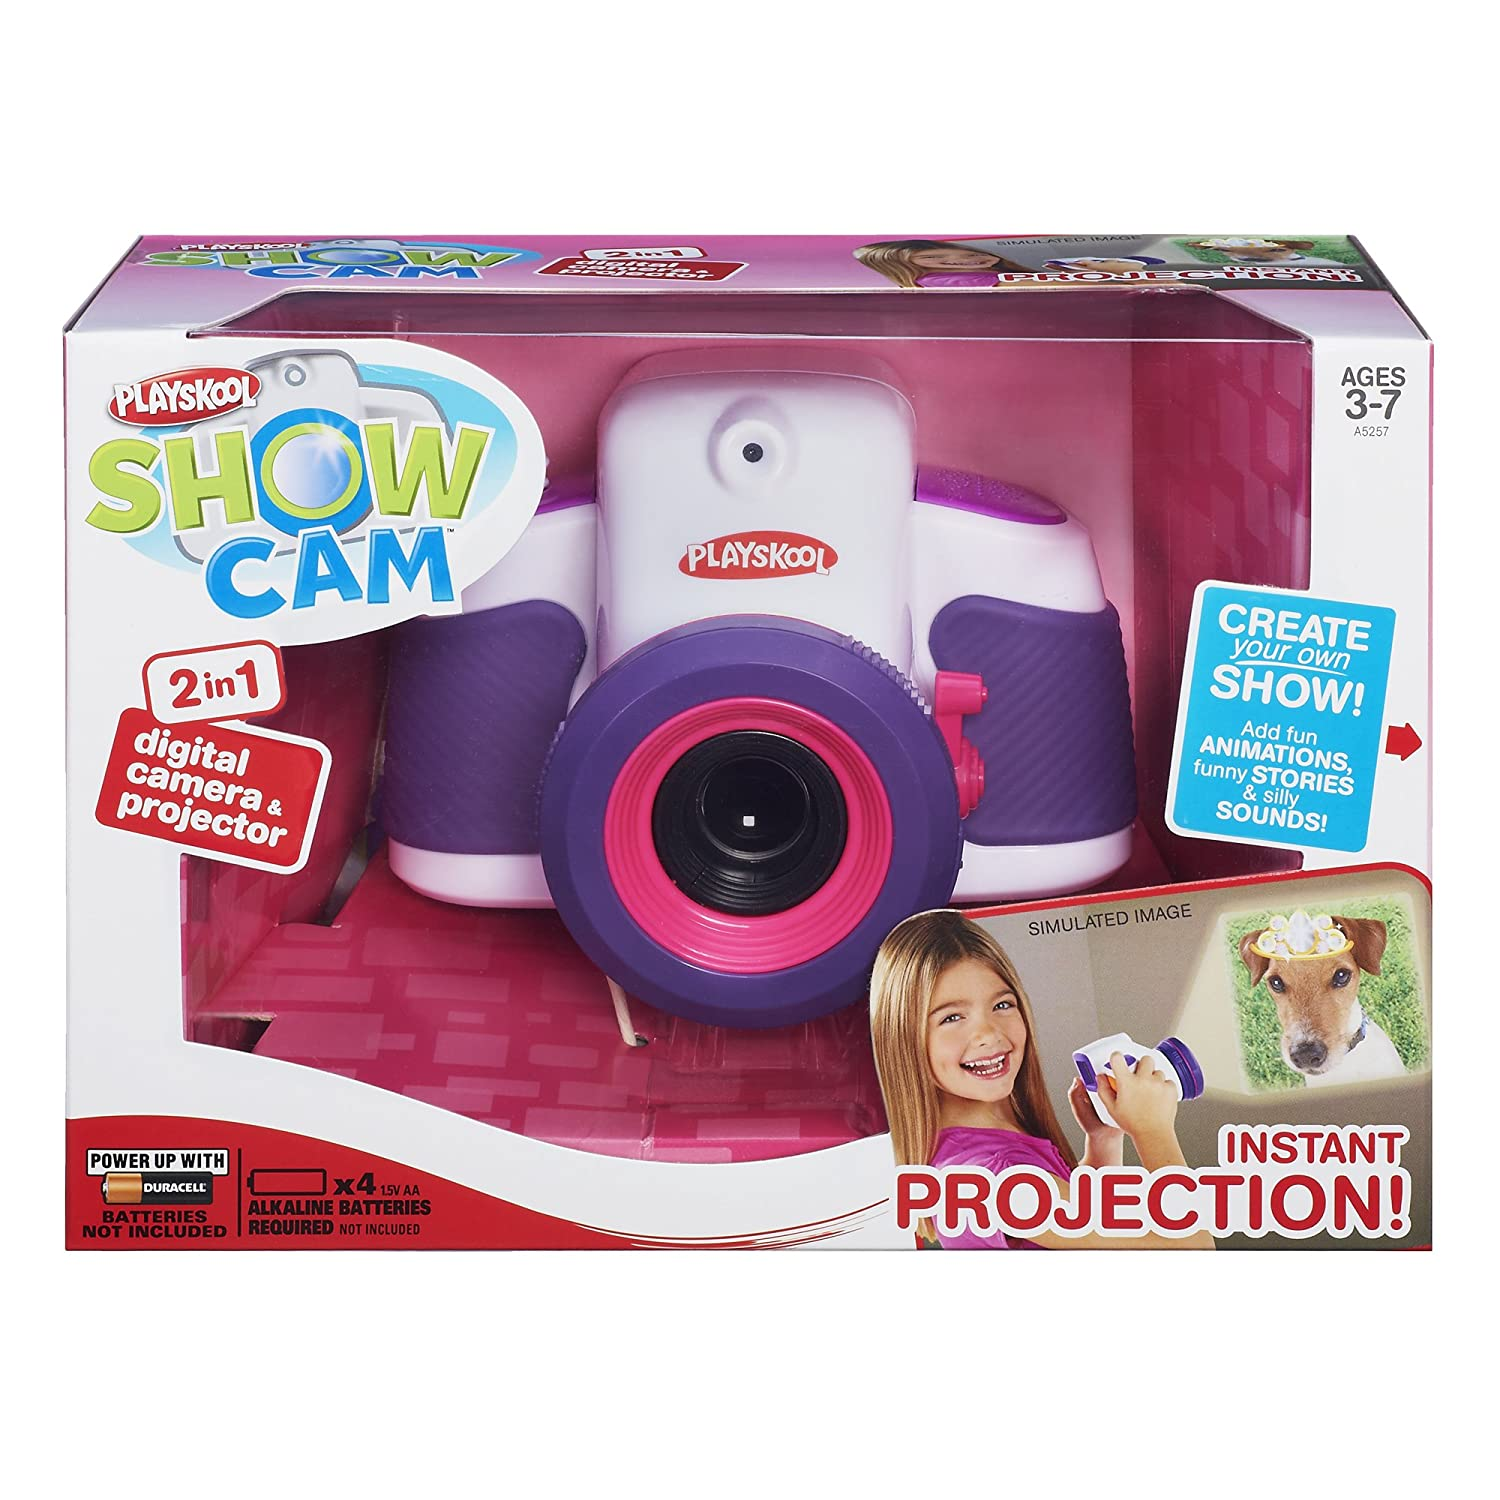 Amazon Playskool Showcam 2 in 1 Digital Camera and Projector